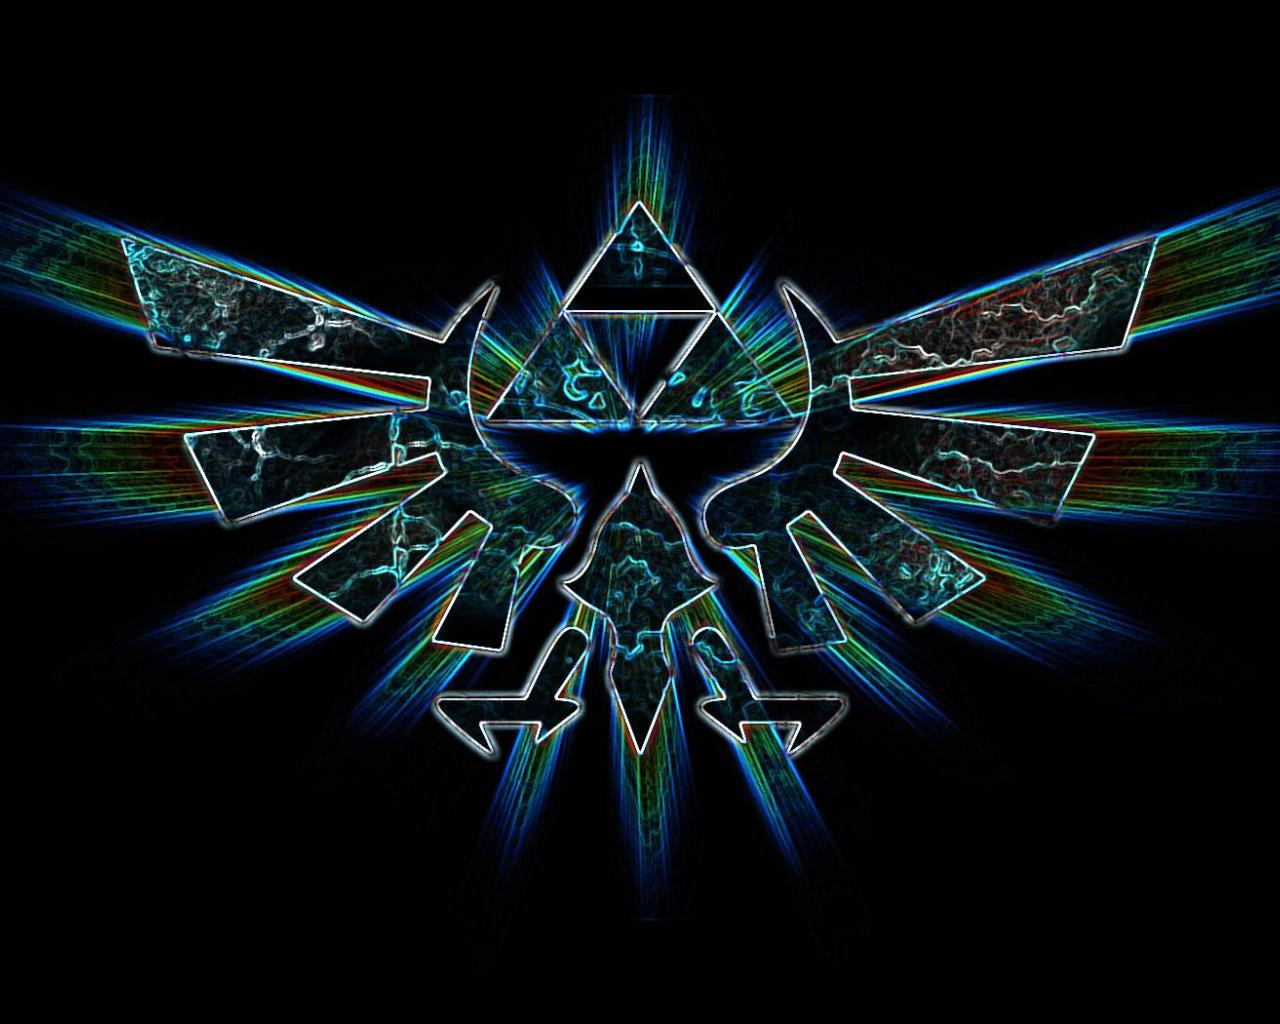 triforce hd wallpaper wallpapersafari